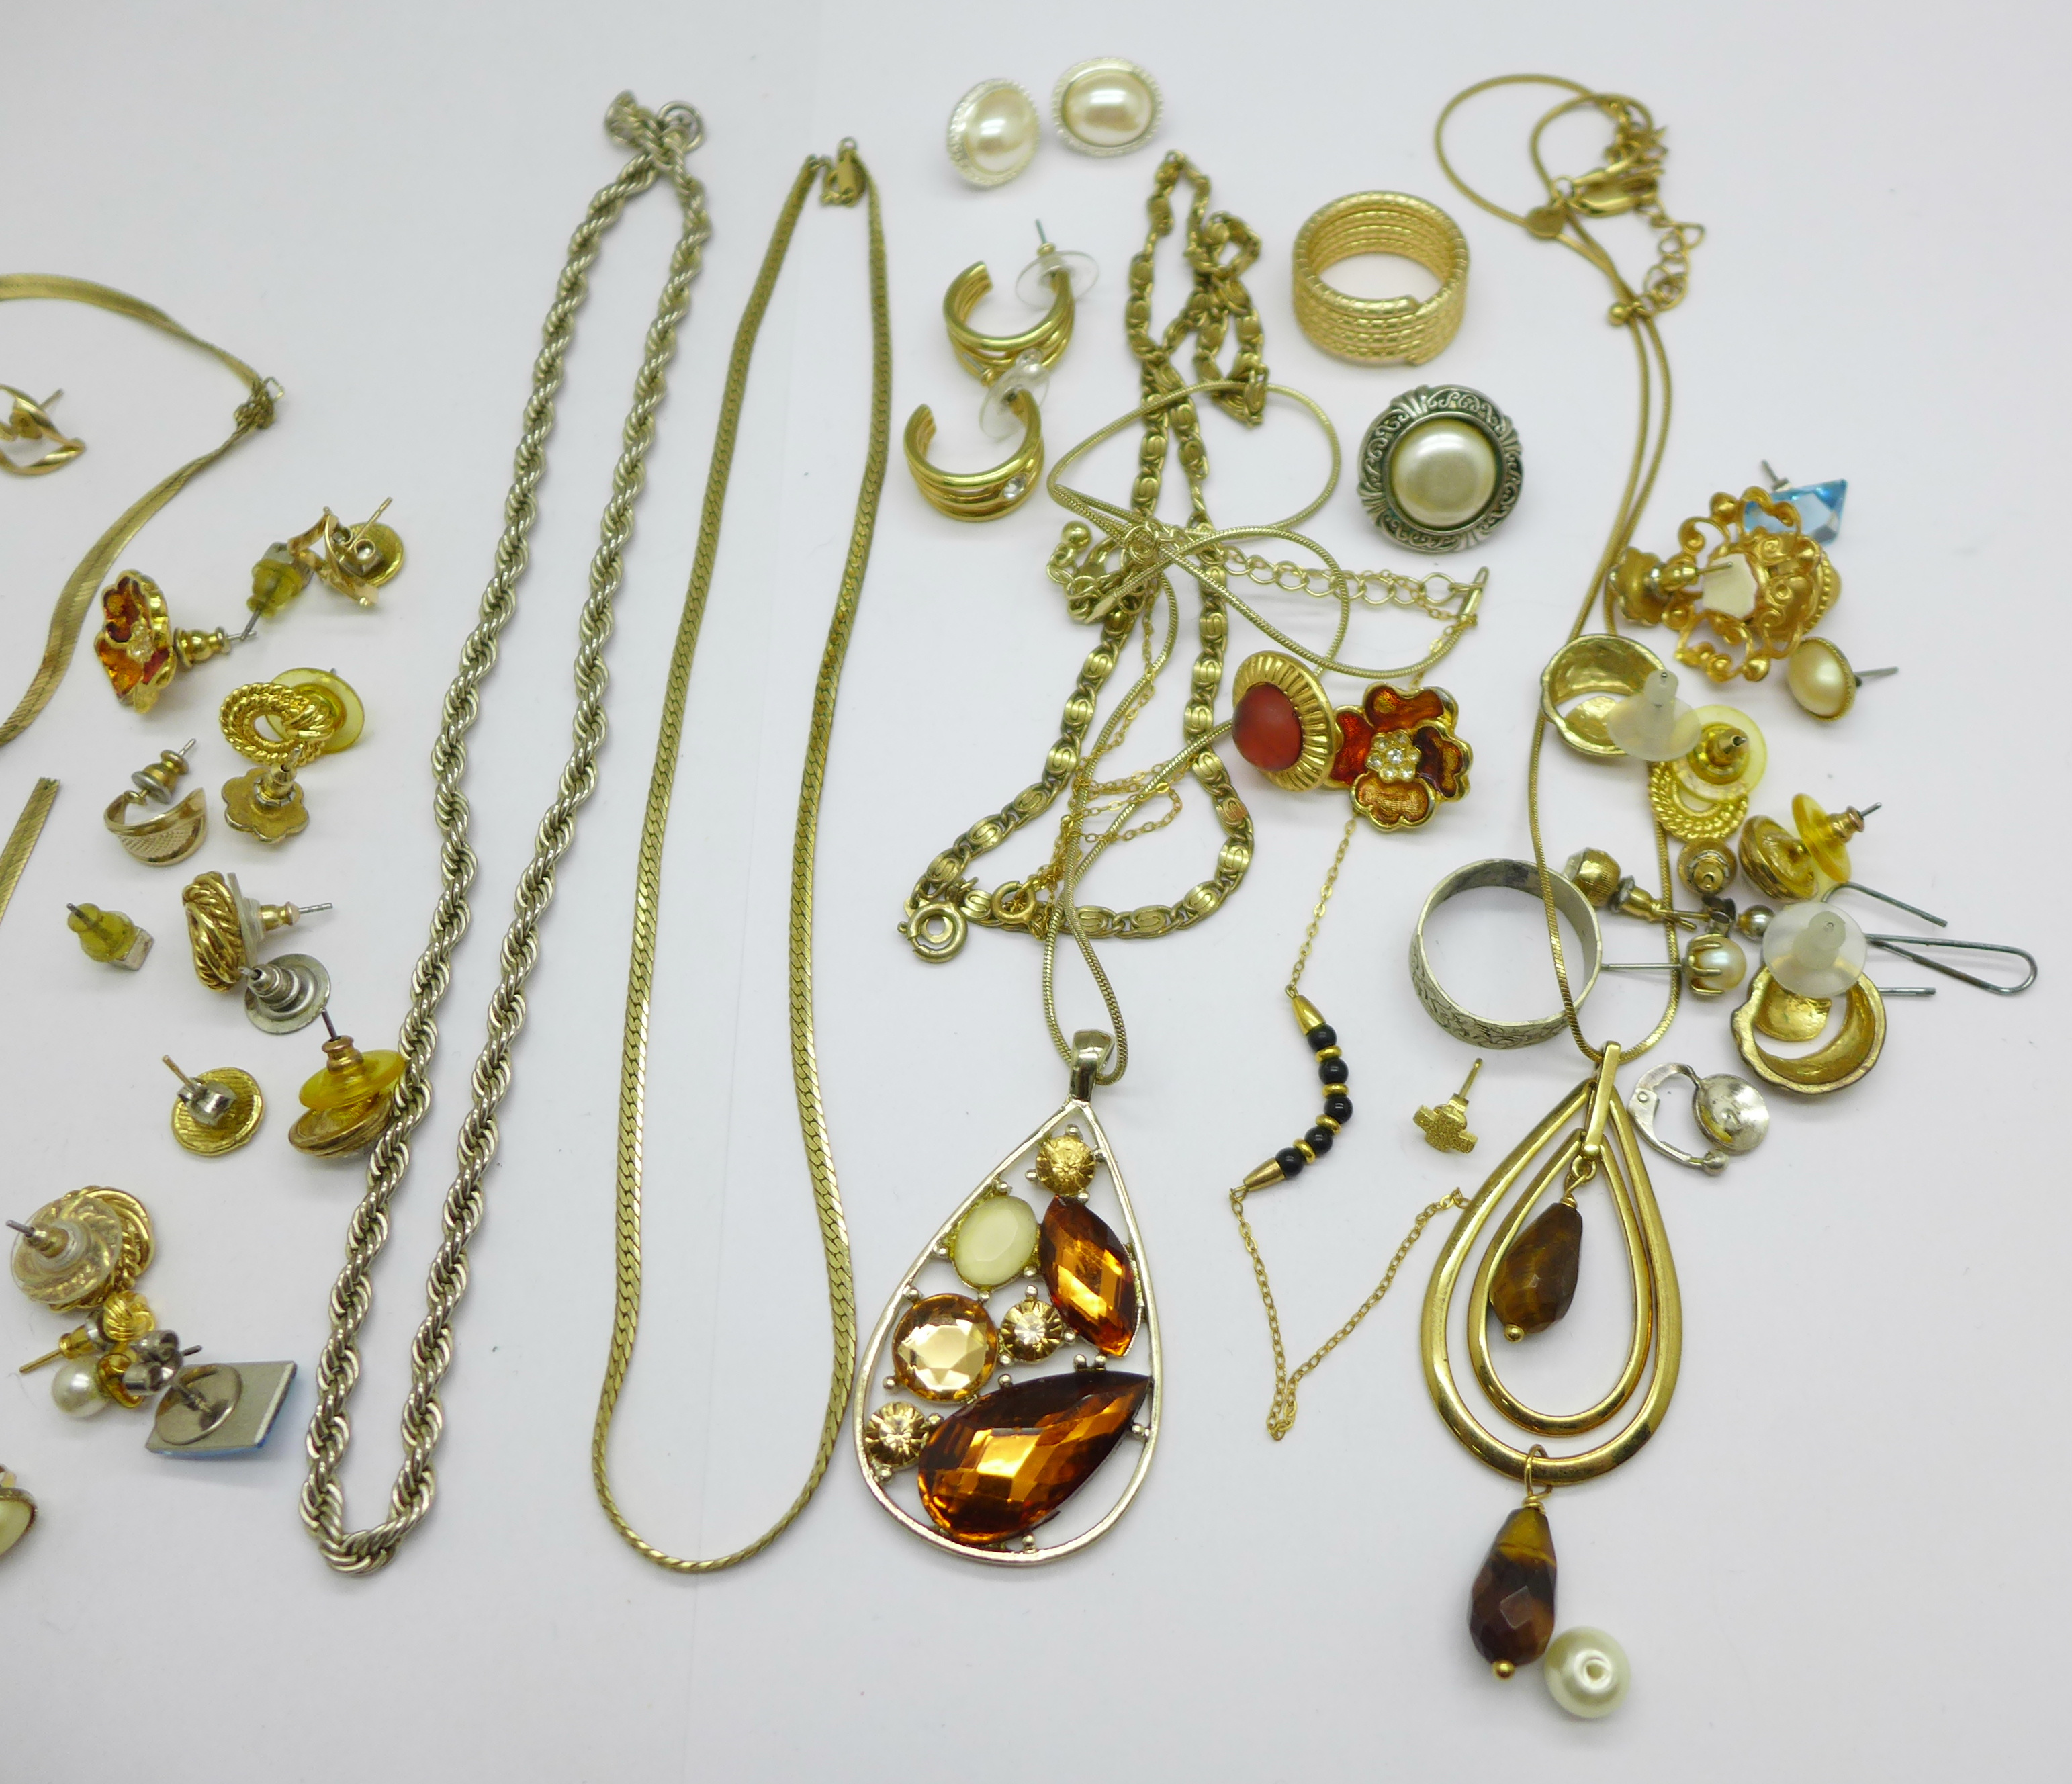 A 9ct gold chain, a/f, and a single 9ct gold earring and costume jewellery, a/f, 5.1g of 9ct gold - Image 3 of 3